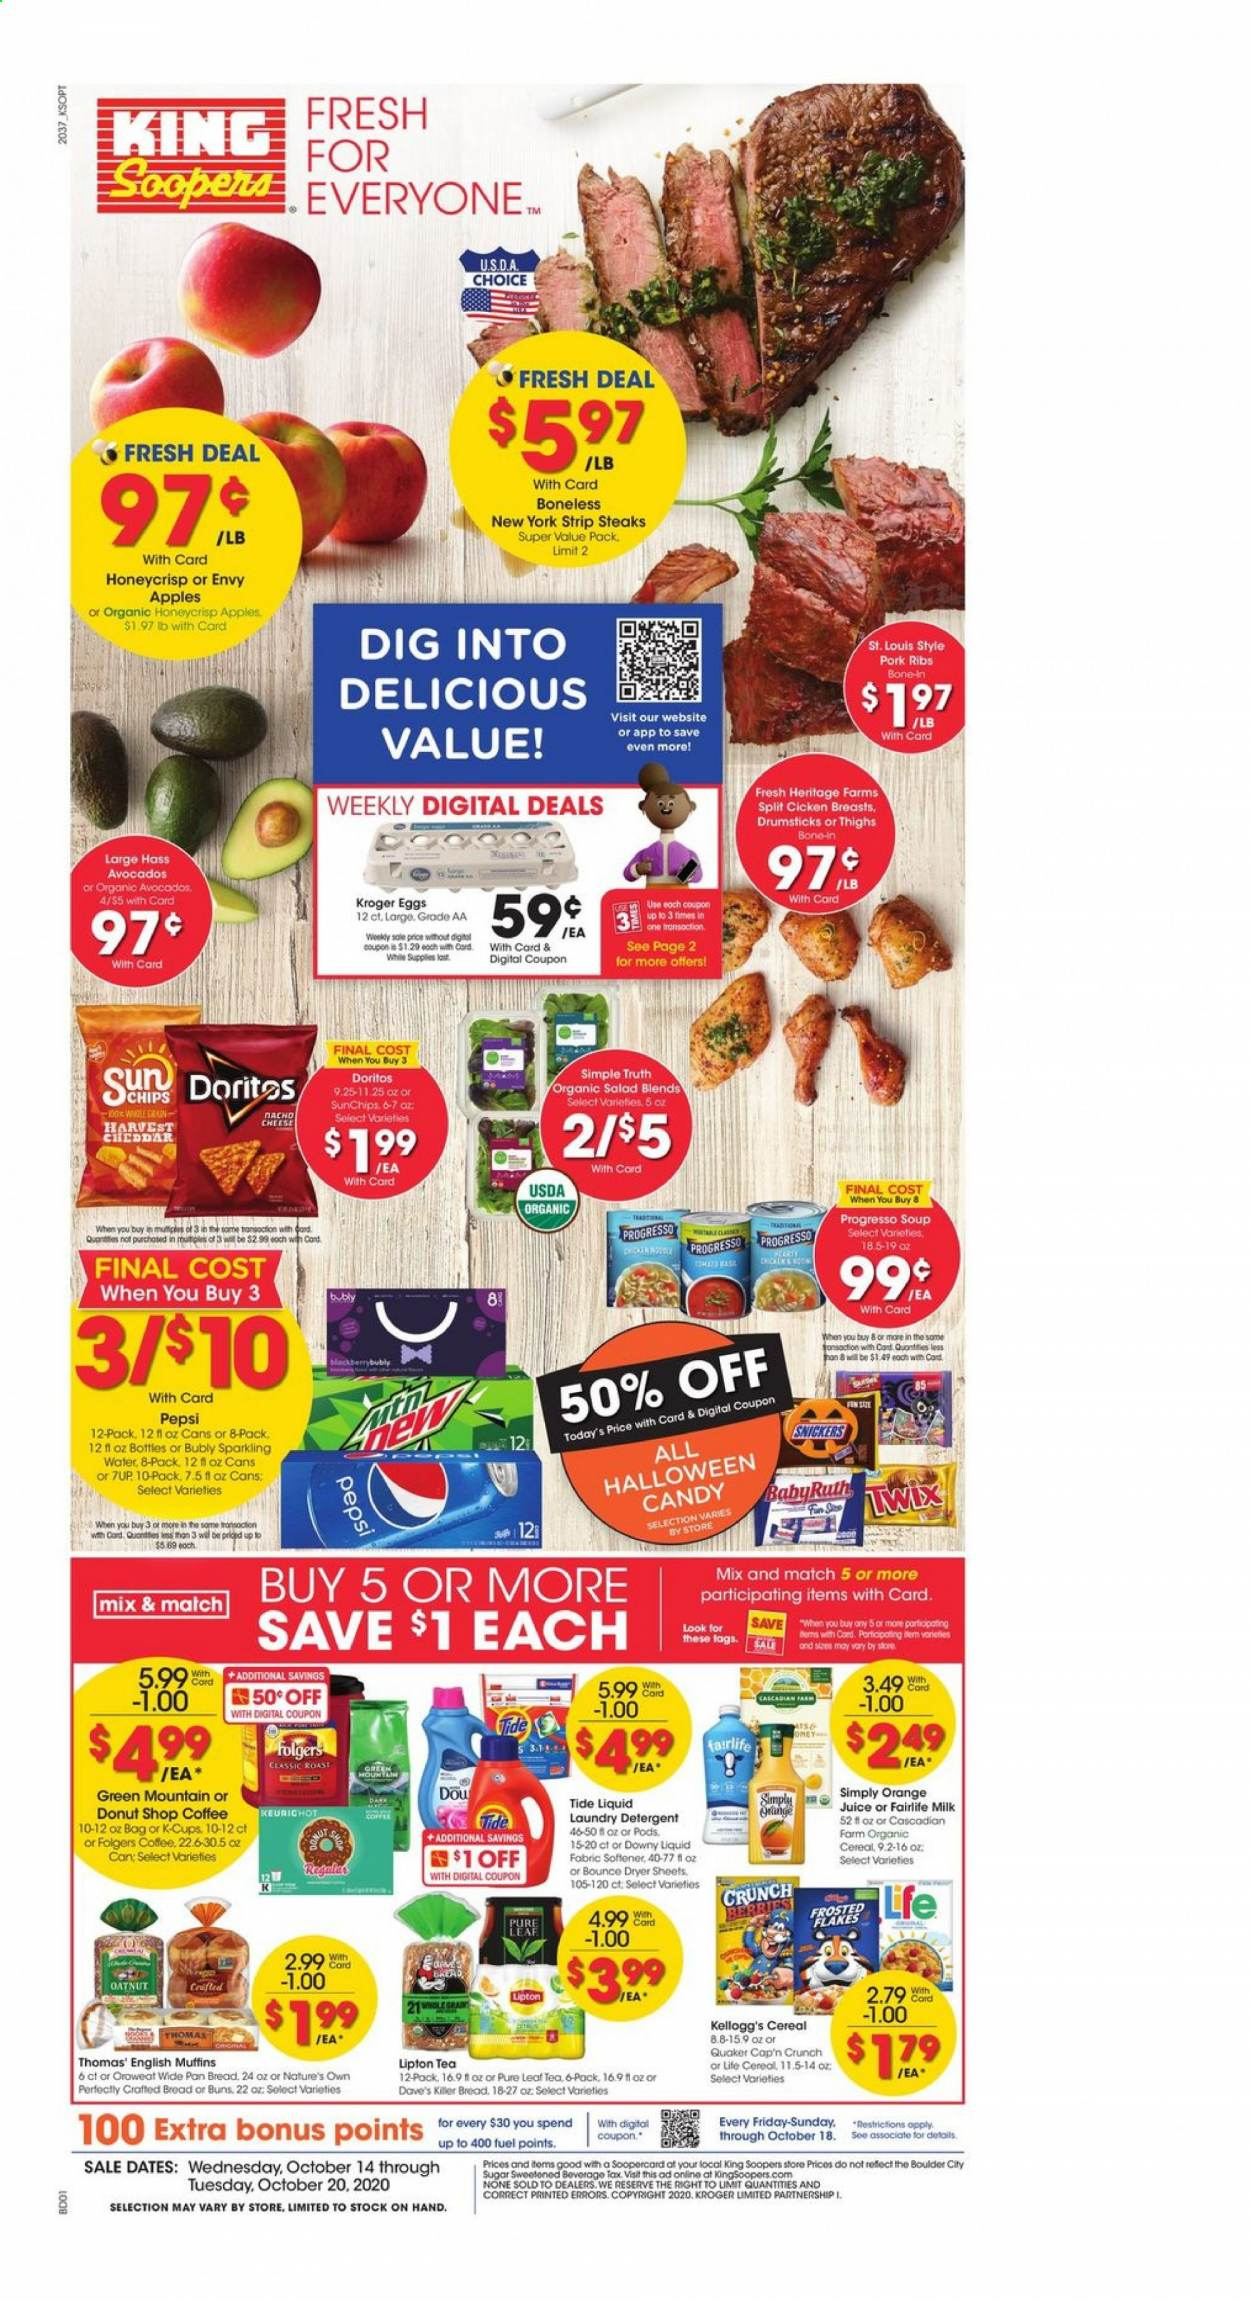 King Soopers Flyer - 10.14.2020 - 10.20.2020 - Sales products - apples, avocado, bread, cap, cereals, coffee, detergent, Doritos, Downy, eggs, english muffins, Ford, fuel, milk, muffins, sugar, tea, Tide, pork meat, pork ribs, cheddar, pan, Pepsi, orange juice, orange, chips, cheese, juice, candy, soup, sparkling water, softener, Lipton, salad, flakes, ribs, Snickers, laundry detergent, Folgers, Apple, donut. Page 1.